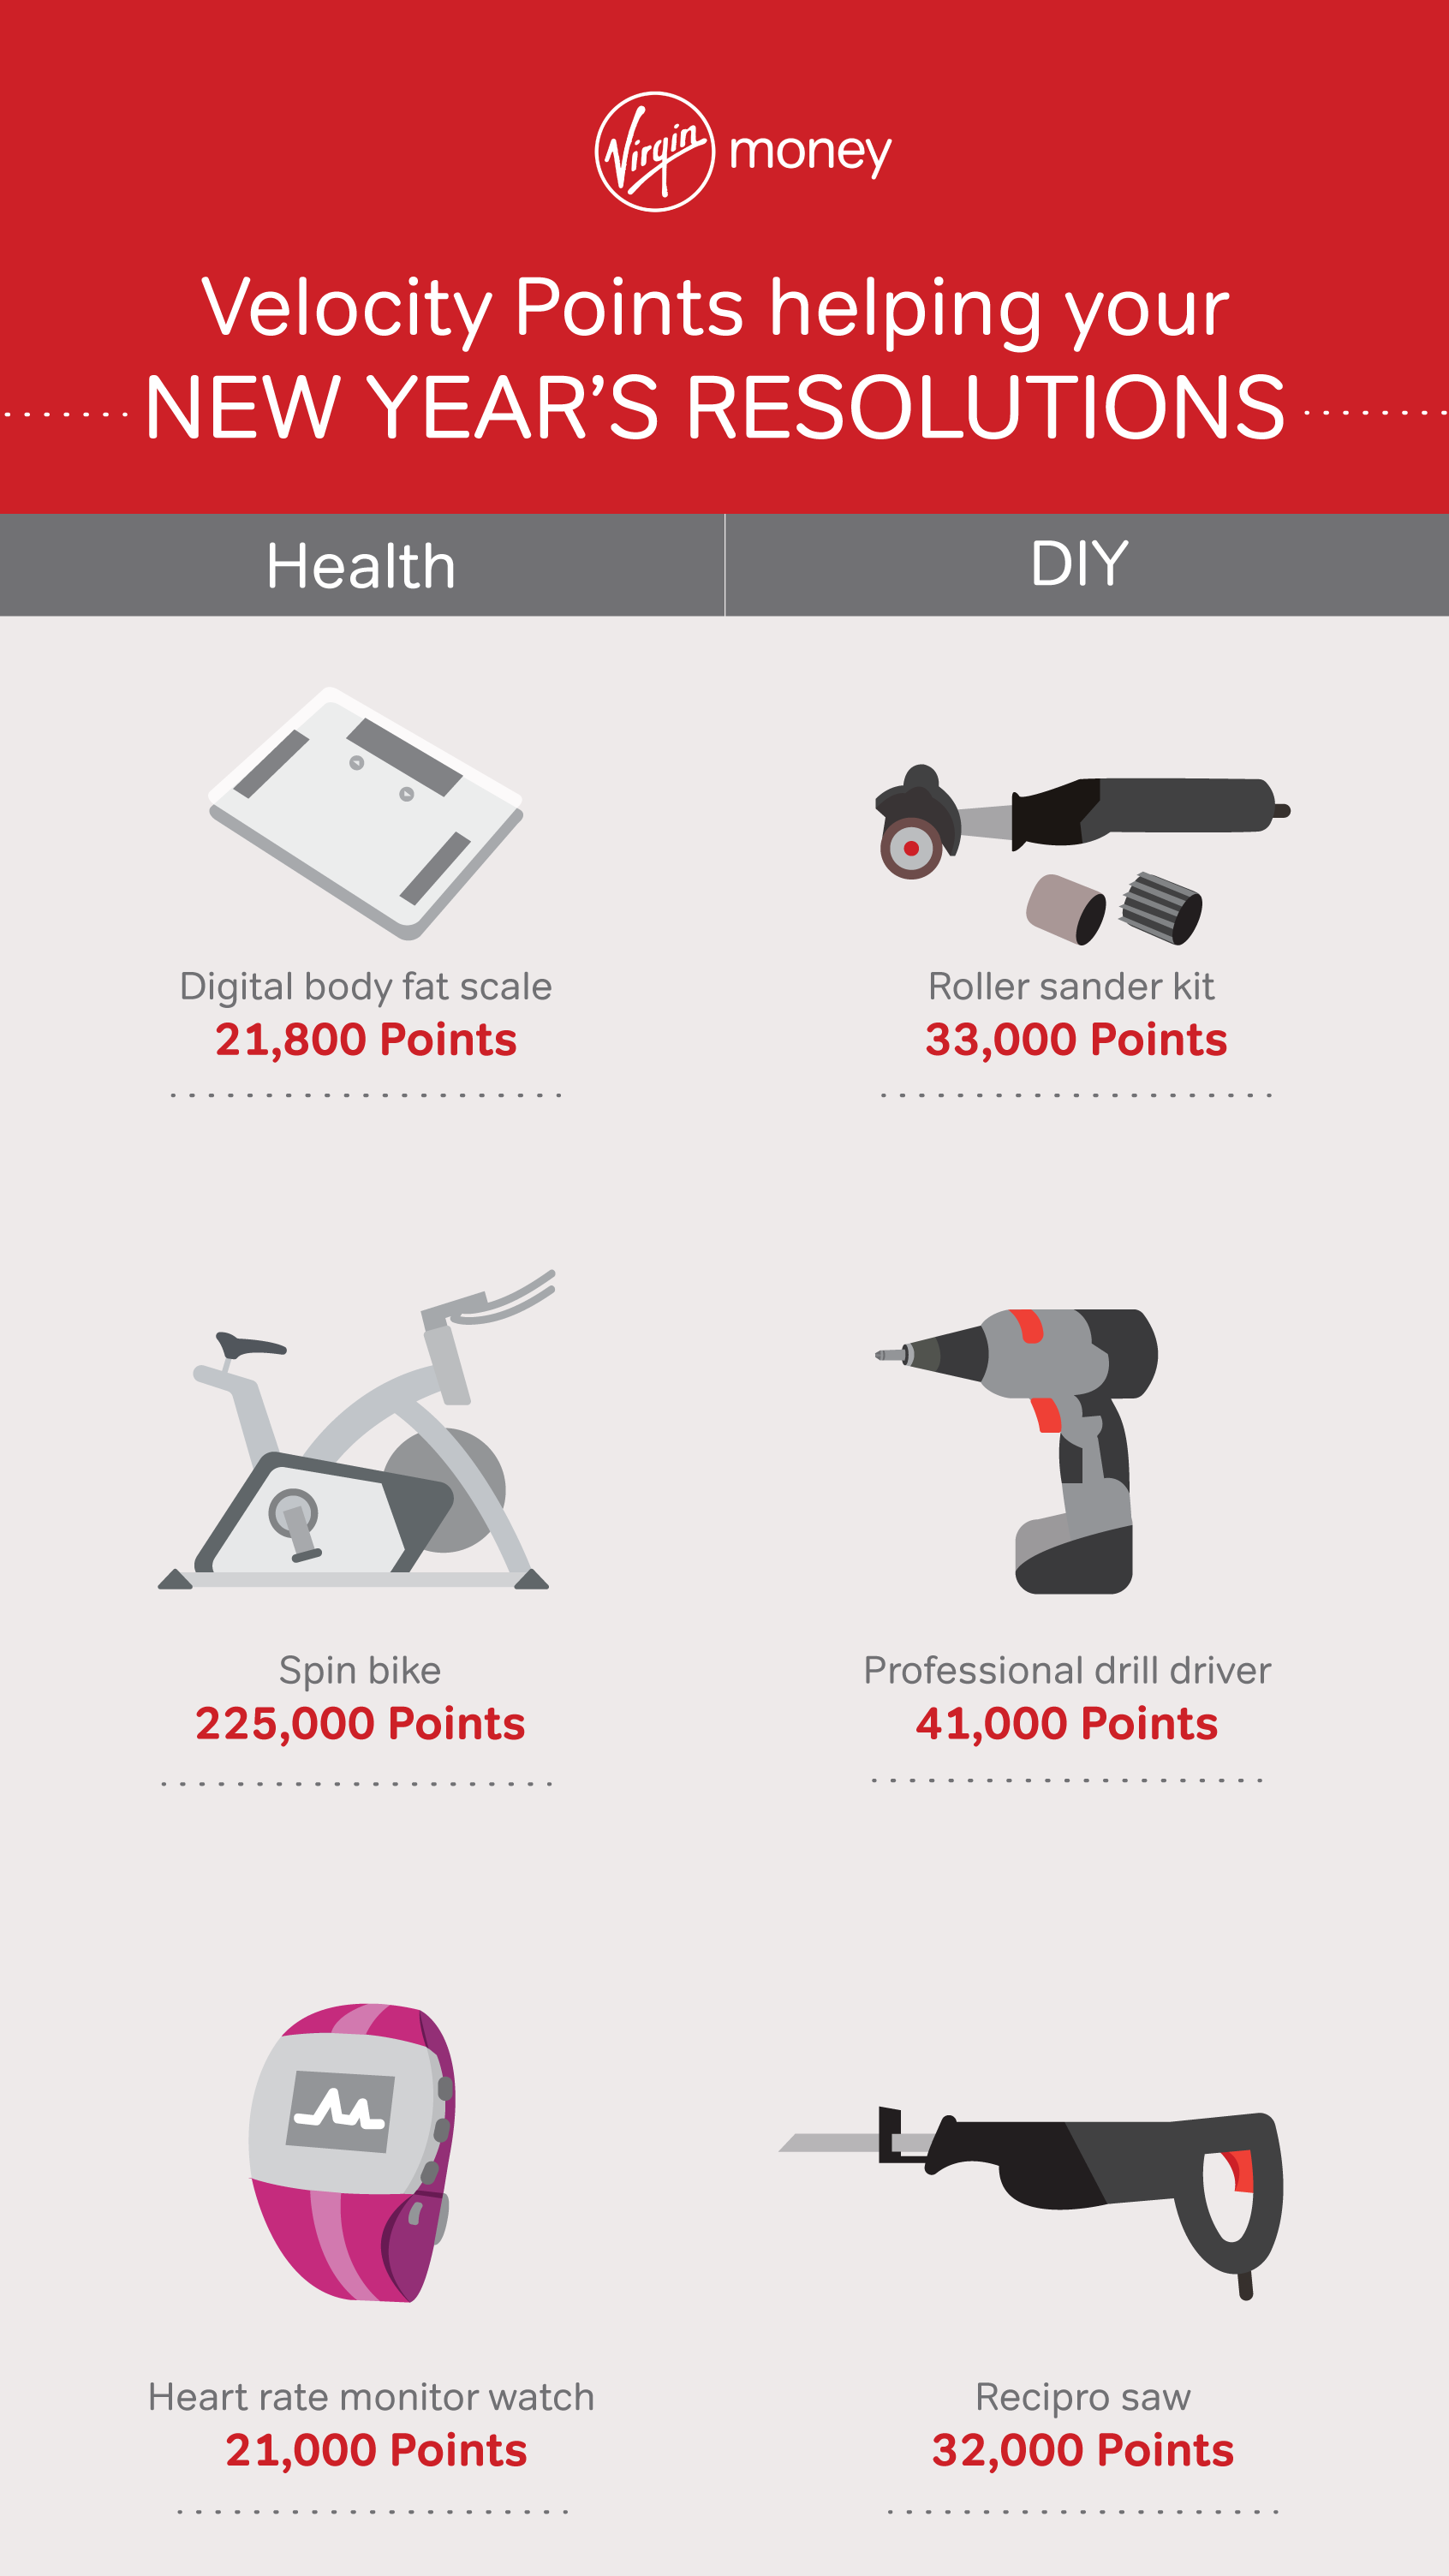 Velocity Points helping your New Year's resolutions